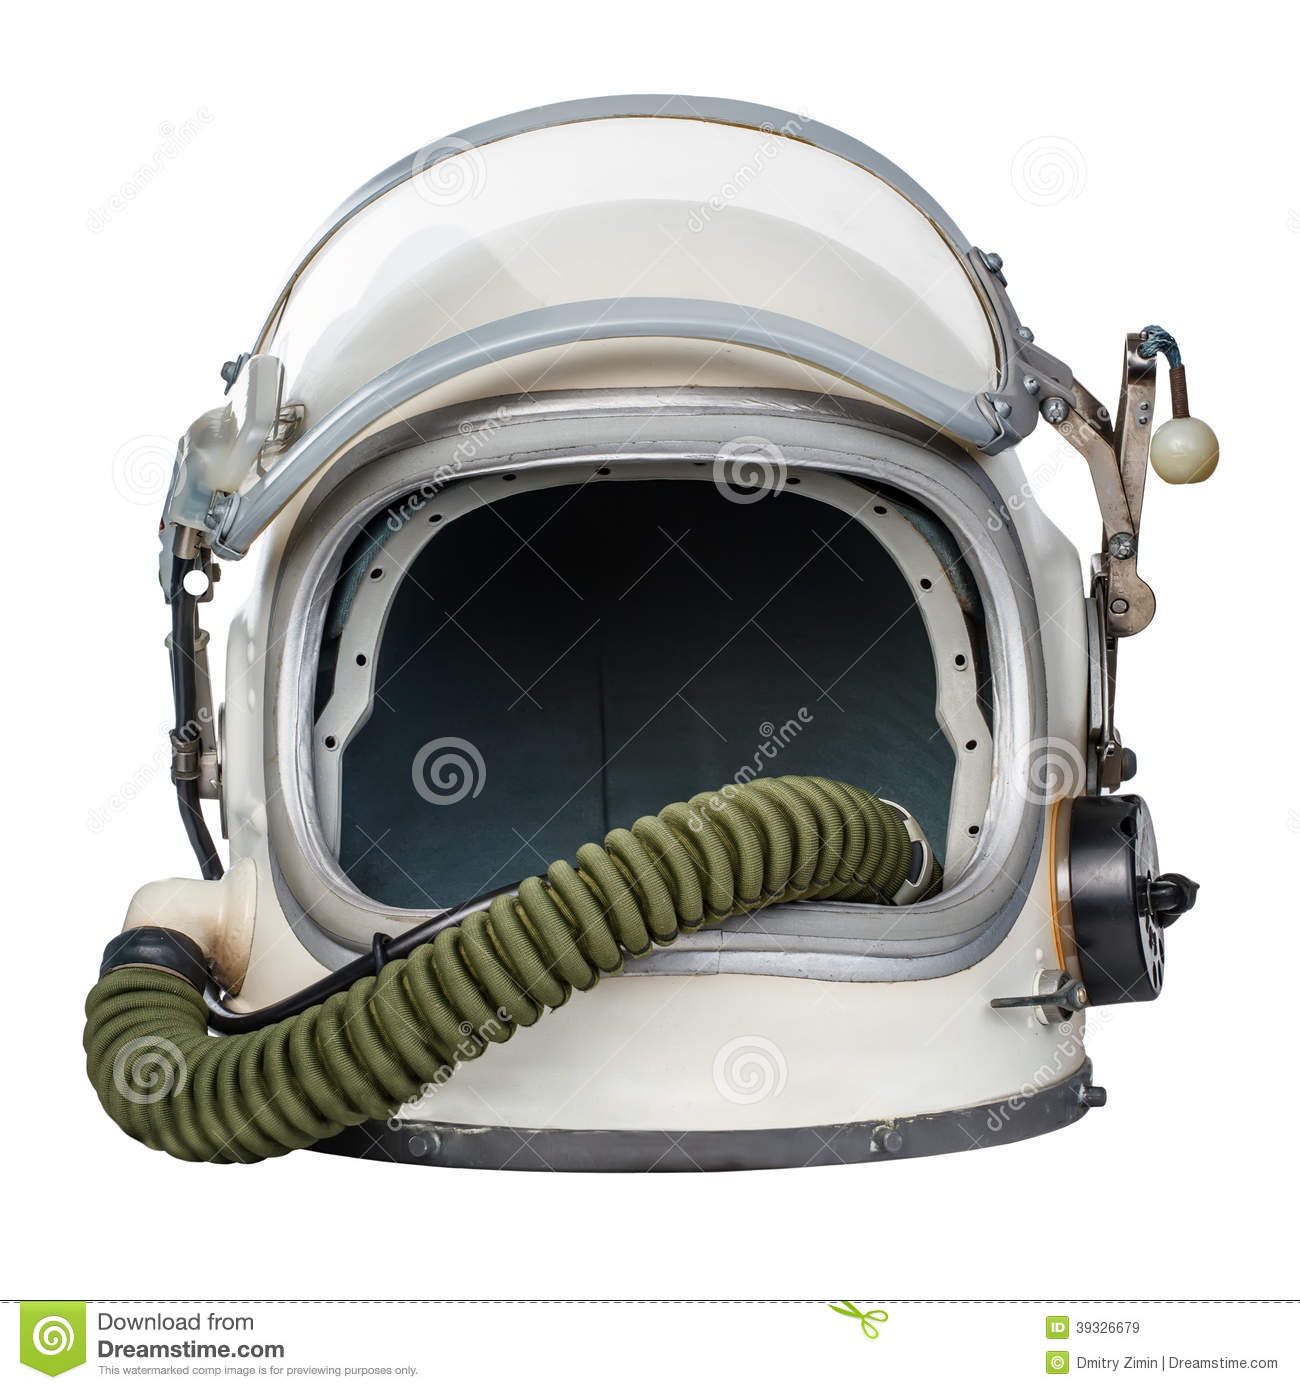 Vintage Space Helmet Stock Photo - Image: 39326679